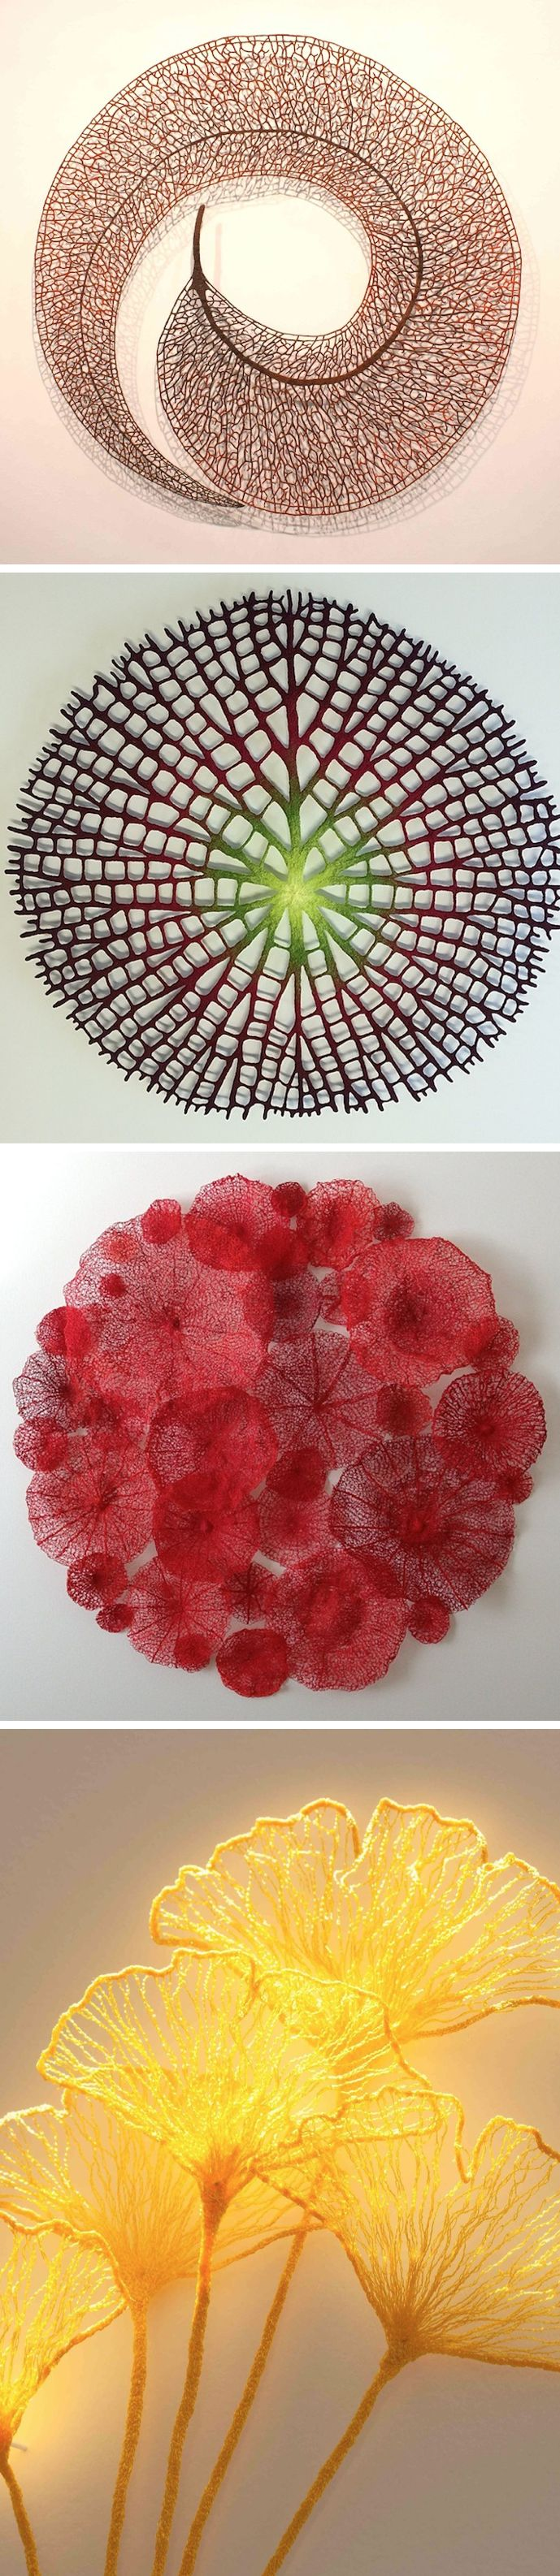 Delicately Embroidered Sculptures by Meredith Woolnough #embroidery